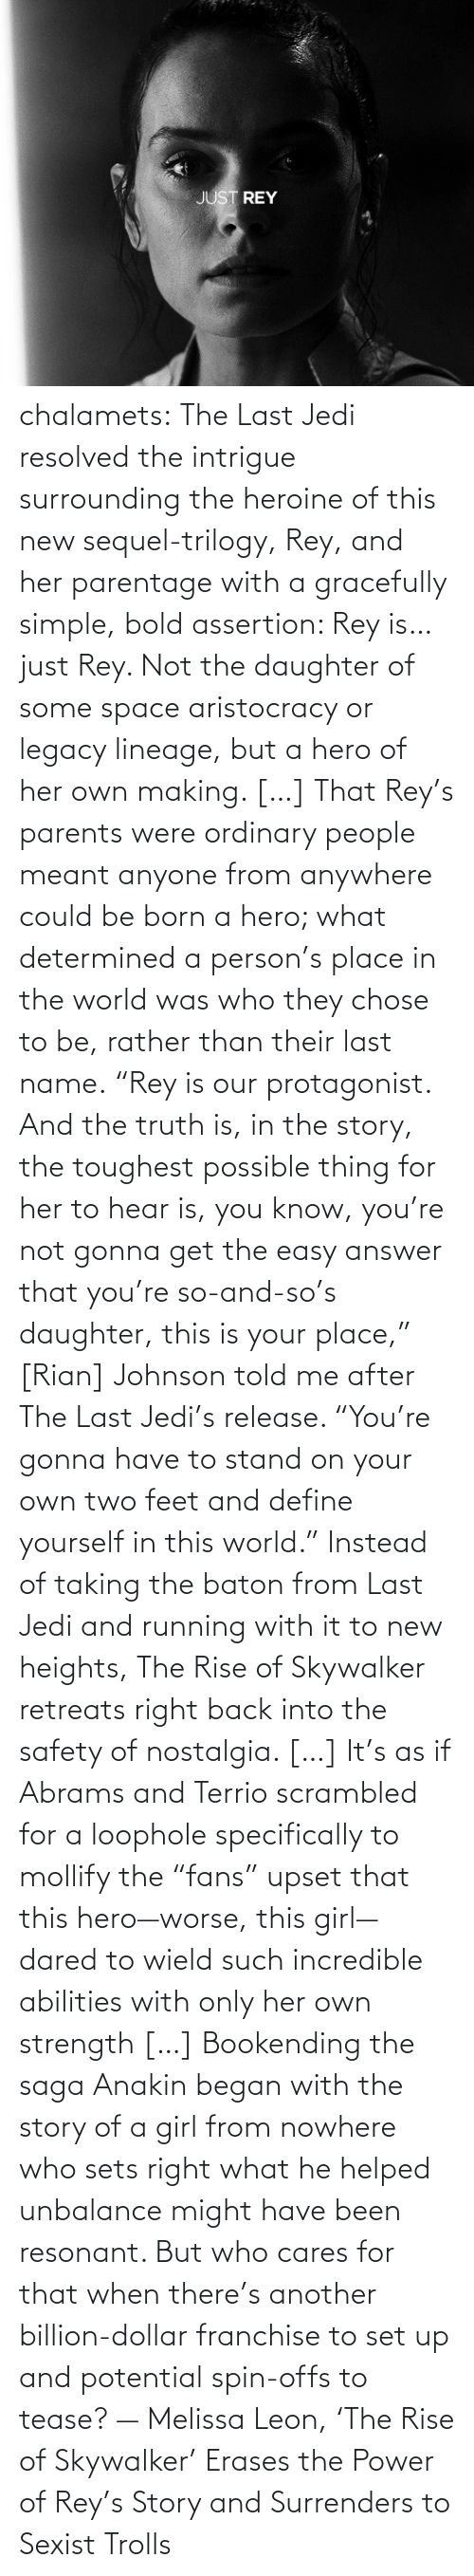 "To Be: chalamets:  The Last Jedi resolved the intrigue surrounding the heroine of this new sequel-trilogy, Rey, and her parentage with a gracefully simple, bold assertion: Rey is… just Rey. Not the daughter of some space aristocracy or legacy lineage, but a hero of her own making. […] That Rey's parents were ordinary people meant anyone from anywhere could be born a hero; what determined a person's place in the world was who they chose to be, rather than their last name. ""Rey is our protagonist. And the truth is, in the story, the toughest possible thing for her to hear is, you know, you're not gonna get the easy answer that you're so-and-so's daughter, this is your place,"" [Rian] Johnson told me after The Last Jedi's release. ""You're gonna have to stand on your own two feet and define yourself in this world."" Instead of taking the baton from Last Jedi and running with it to new heights, The Rise of Skywalker retreats right back into the safety of nostalgia. […] It's as if Abrams and Terrio scrambled for a loophole specifically to mollify the ""fans"" upset that this hero—worse, this girl—dared to wield such incredible abilities with only her own strength […] Bookending the saga Anakin began with the story of a girl from nowhere who sets right what he helped unbalance might have been resonant. But who cares for that when there's another billion-dollar franchise to set up and potential spin-offs to tease? — Melissa Leon, 'The Rise of Skywalker' Erases the Power of Rey's Story and Surrenders to Sexist Trolls"